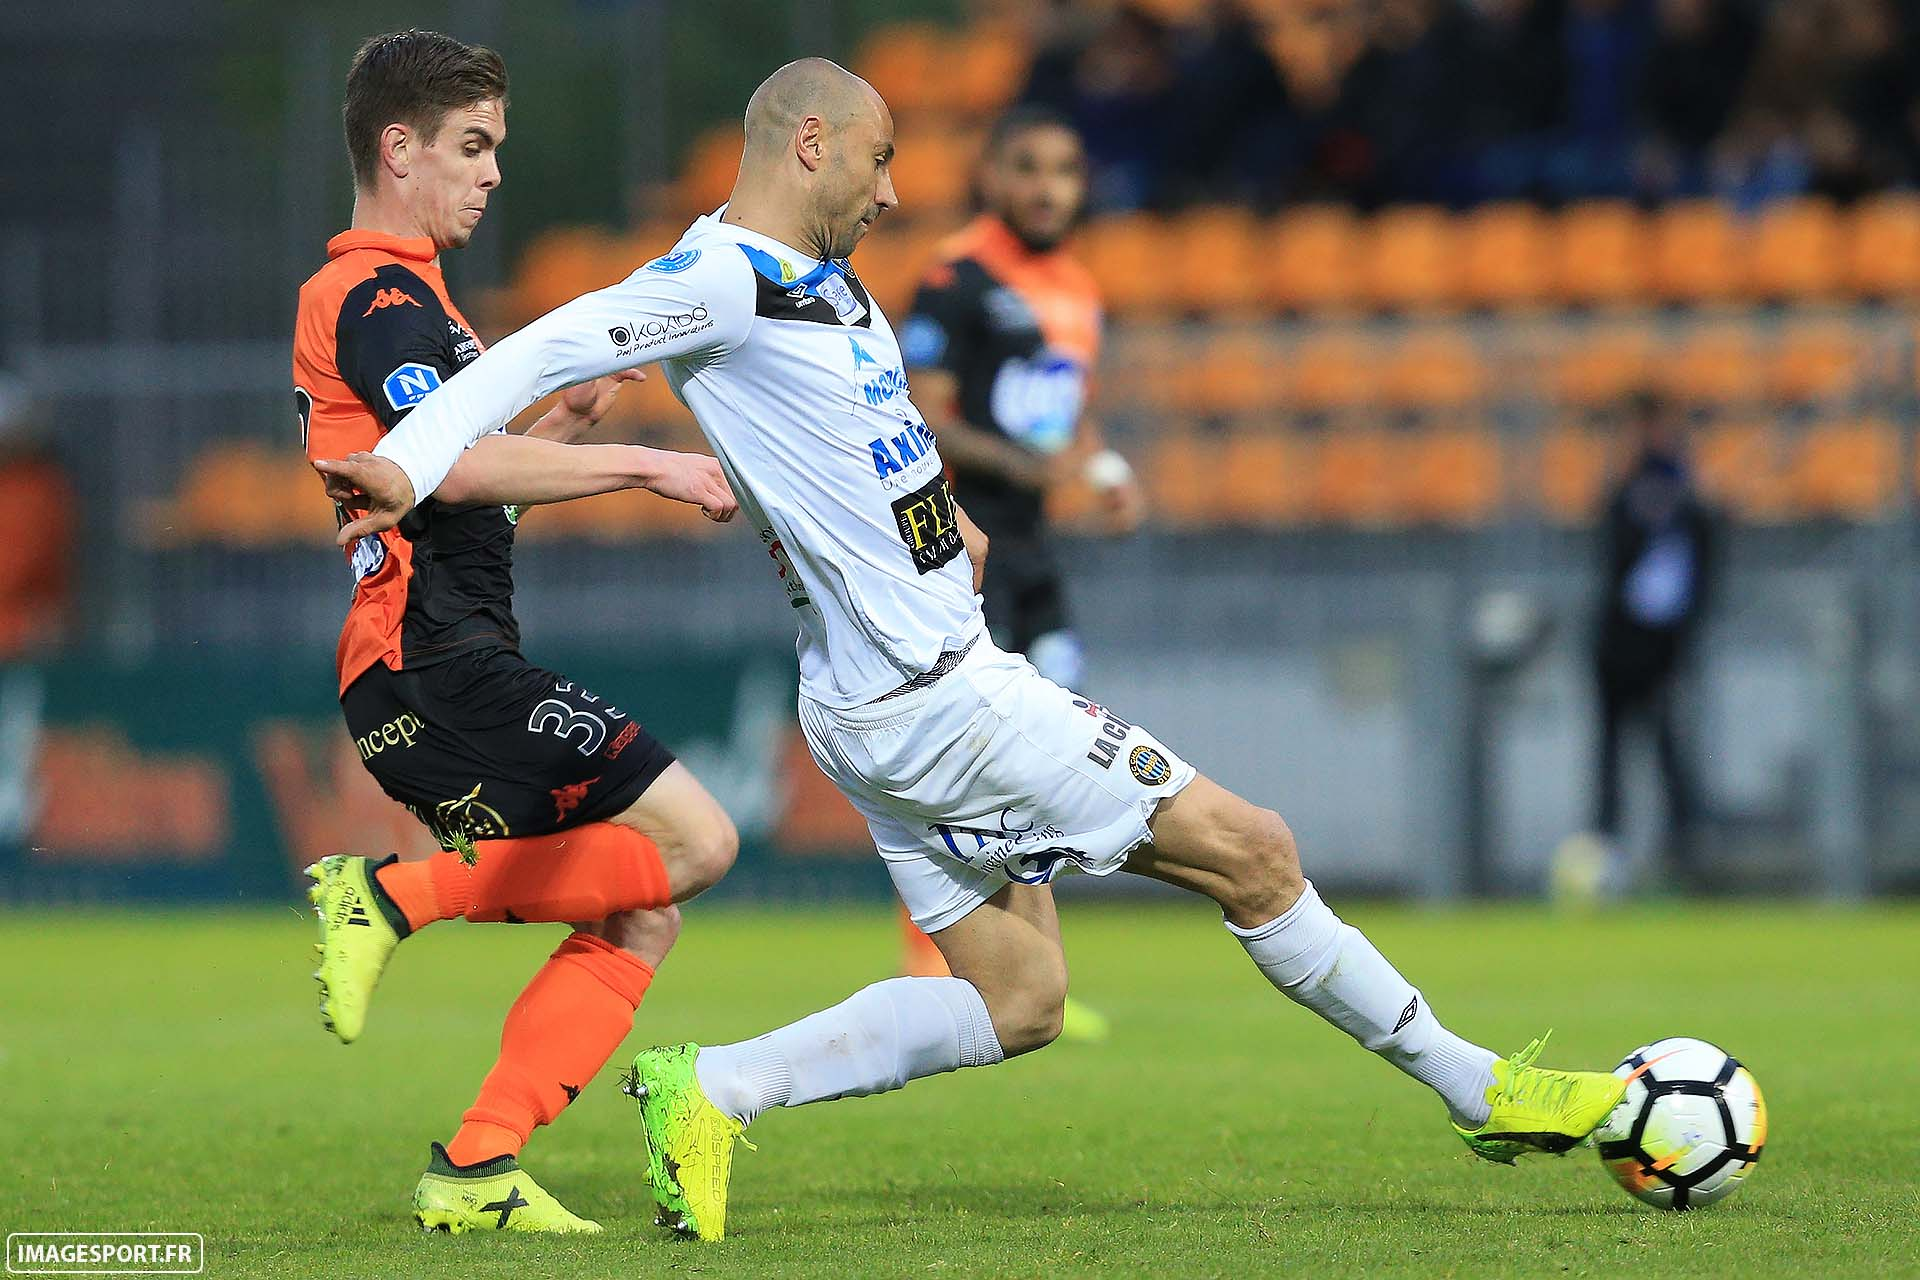 Clément COUVRY (Stade Lavallois) / Laurent HELOÏSE (FC Chambly Oise